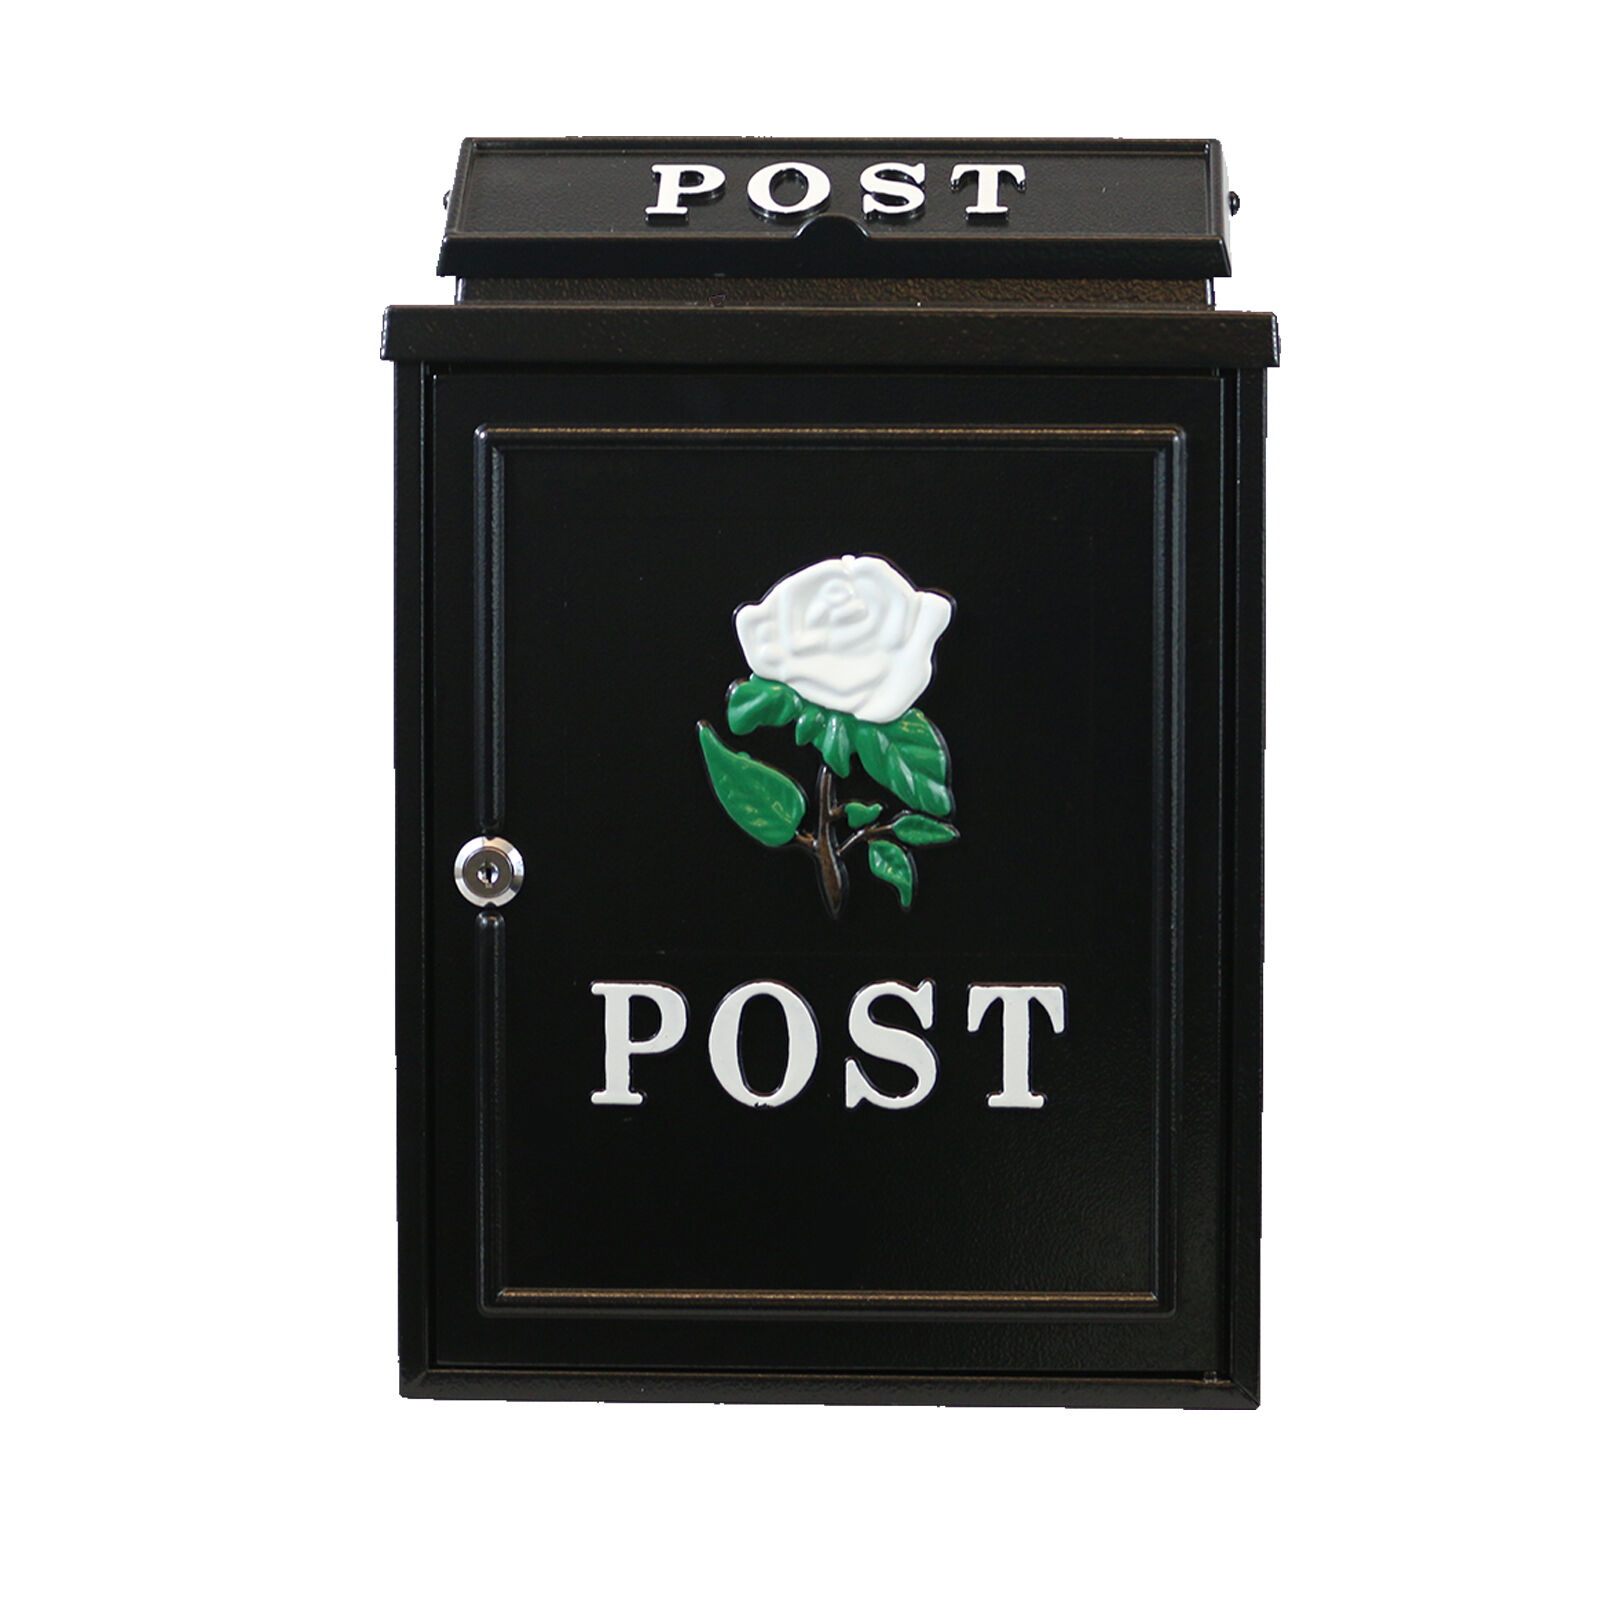 Letterbox Mail Box Postbox Wall Mounted Amp Free Standing